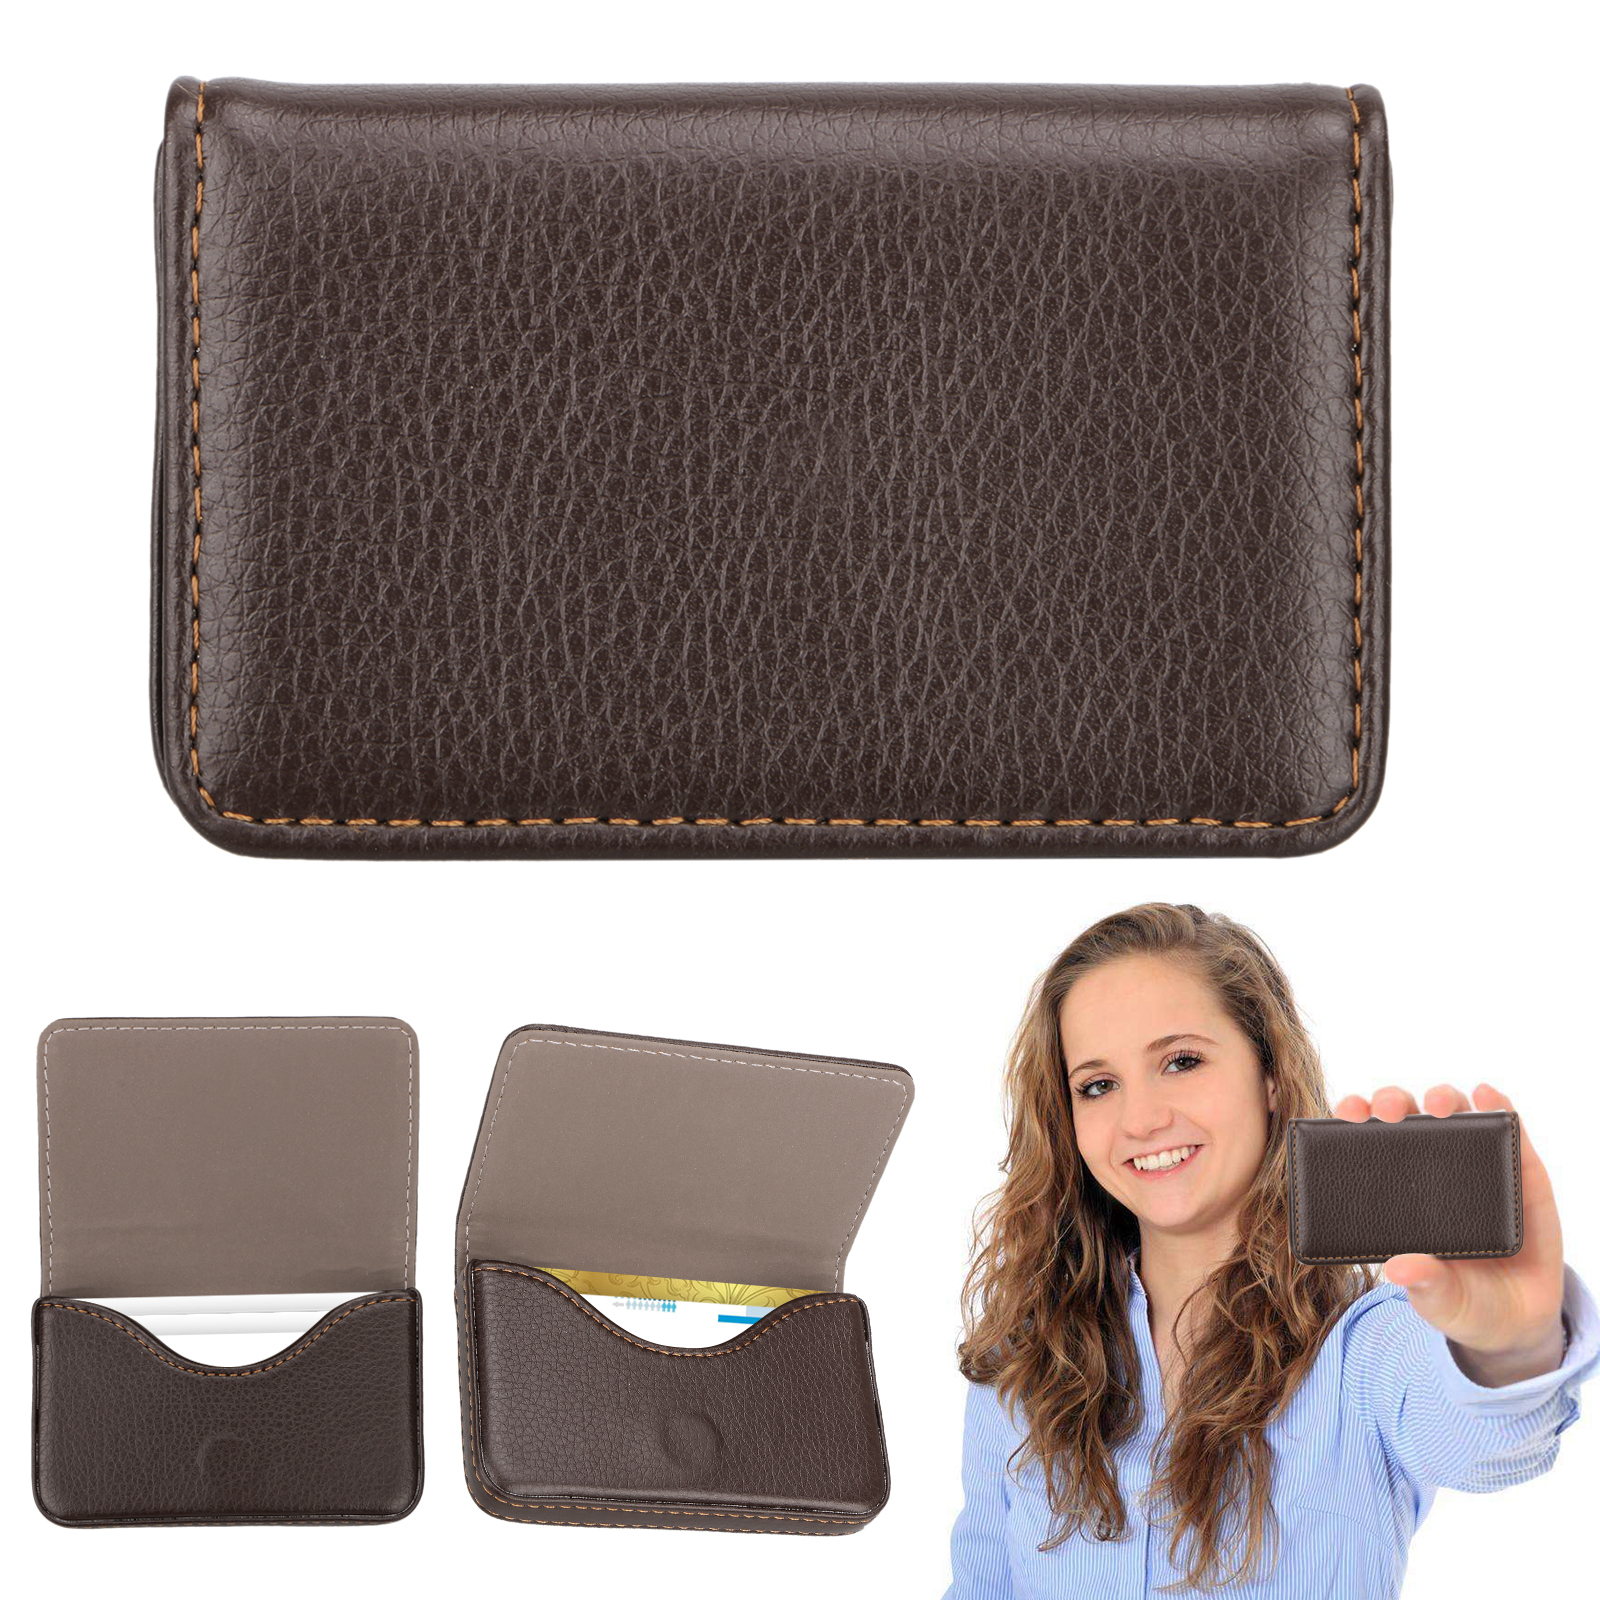 Mens-Pocket-Leather-Business-ID-Credit-Card-Holder-Case-Wallet-w-Magnetic-Shut thumbnail 10